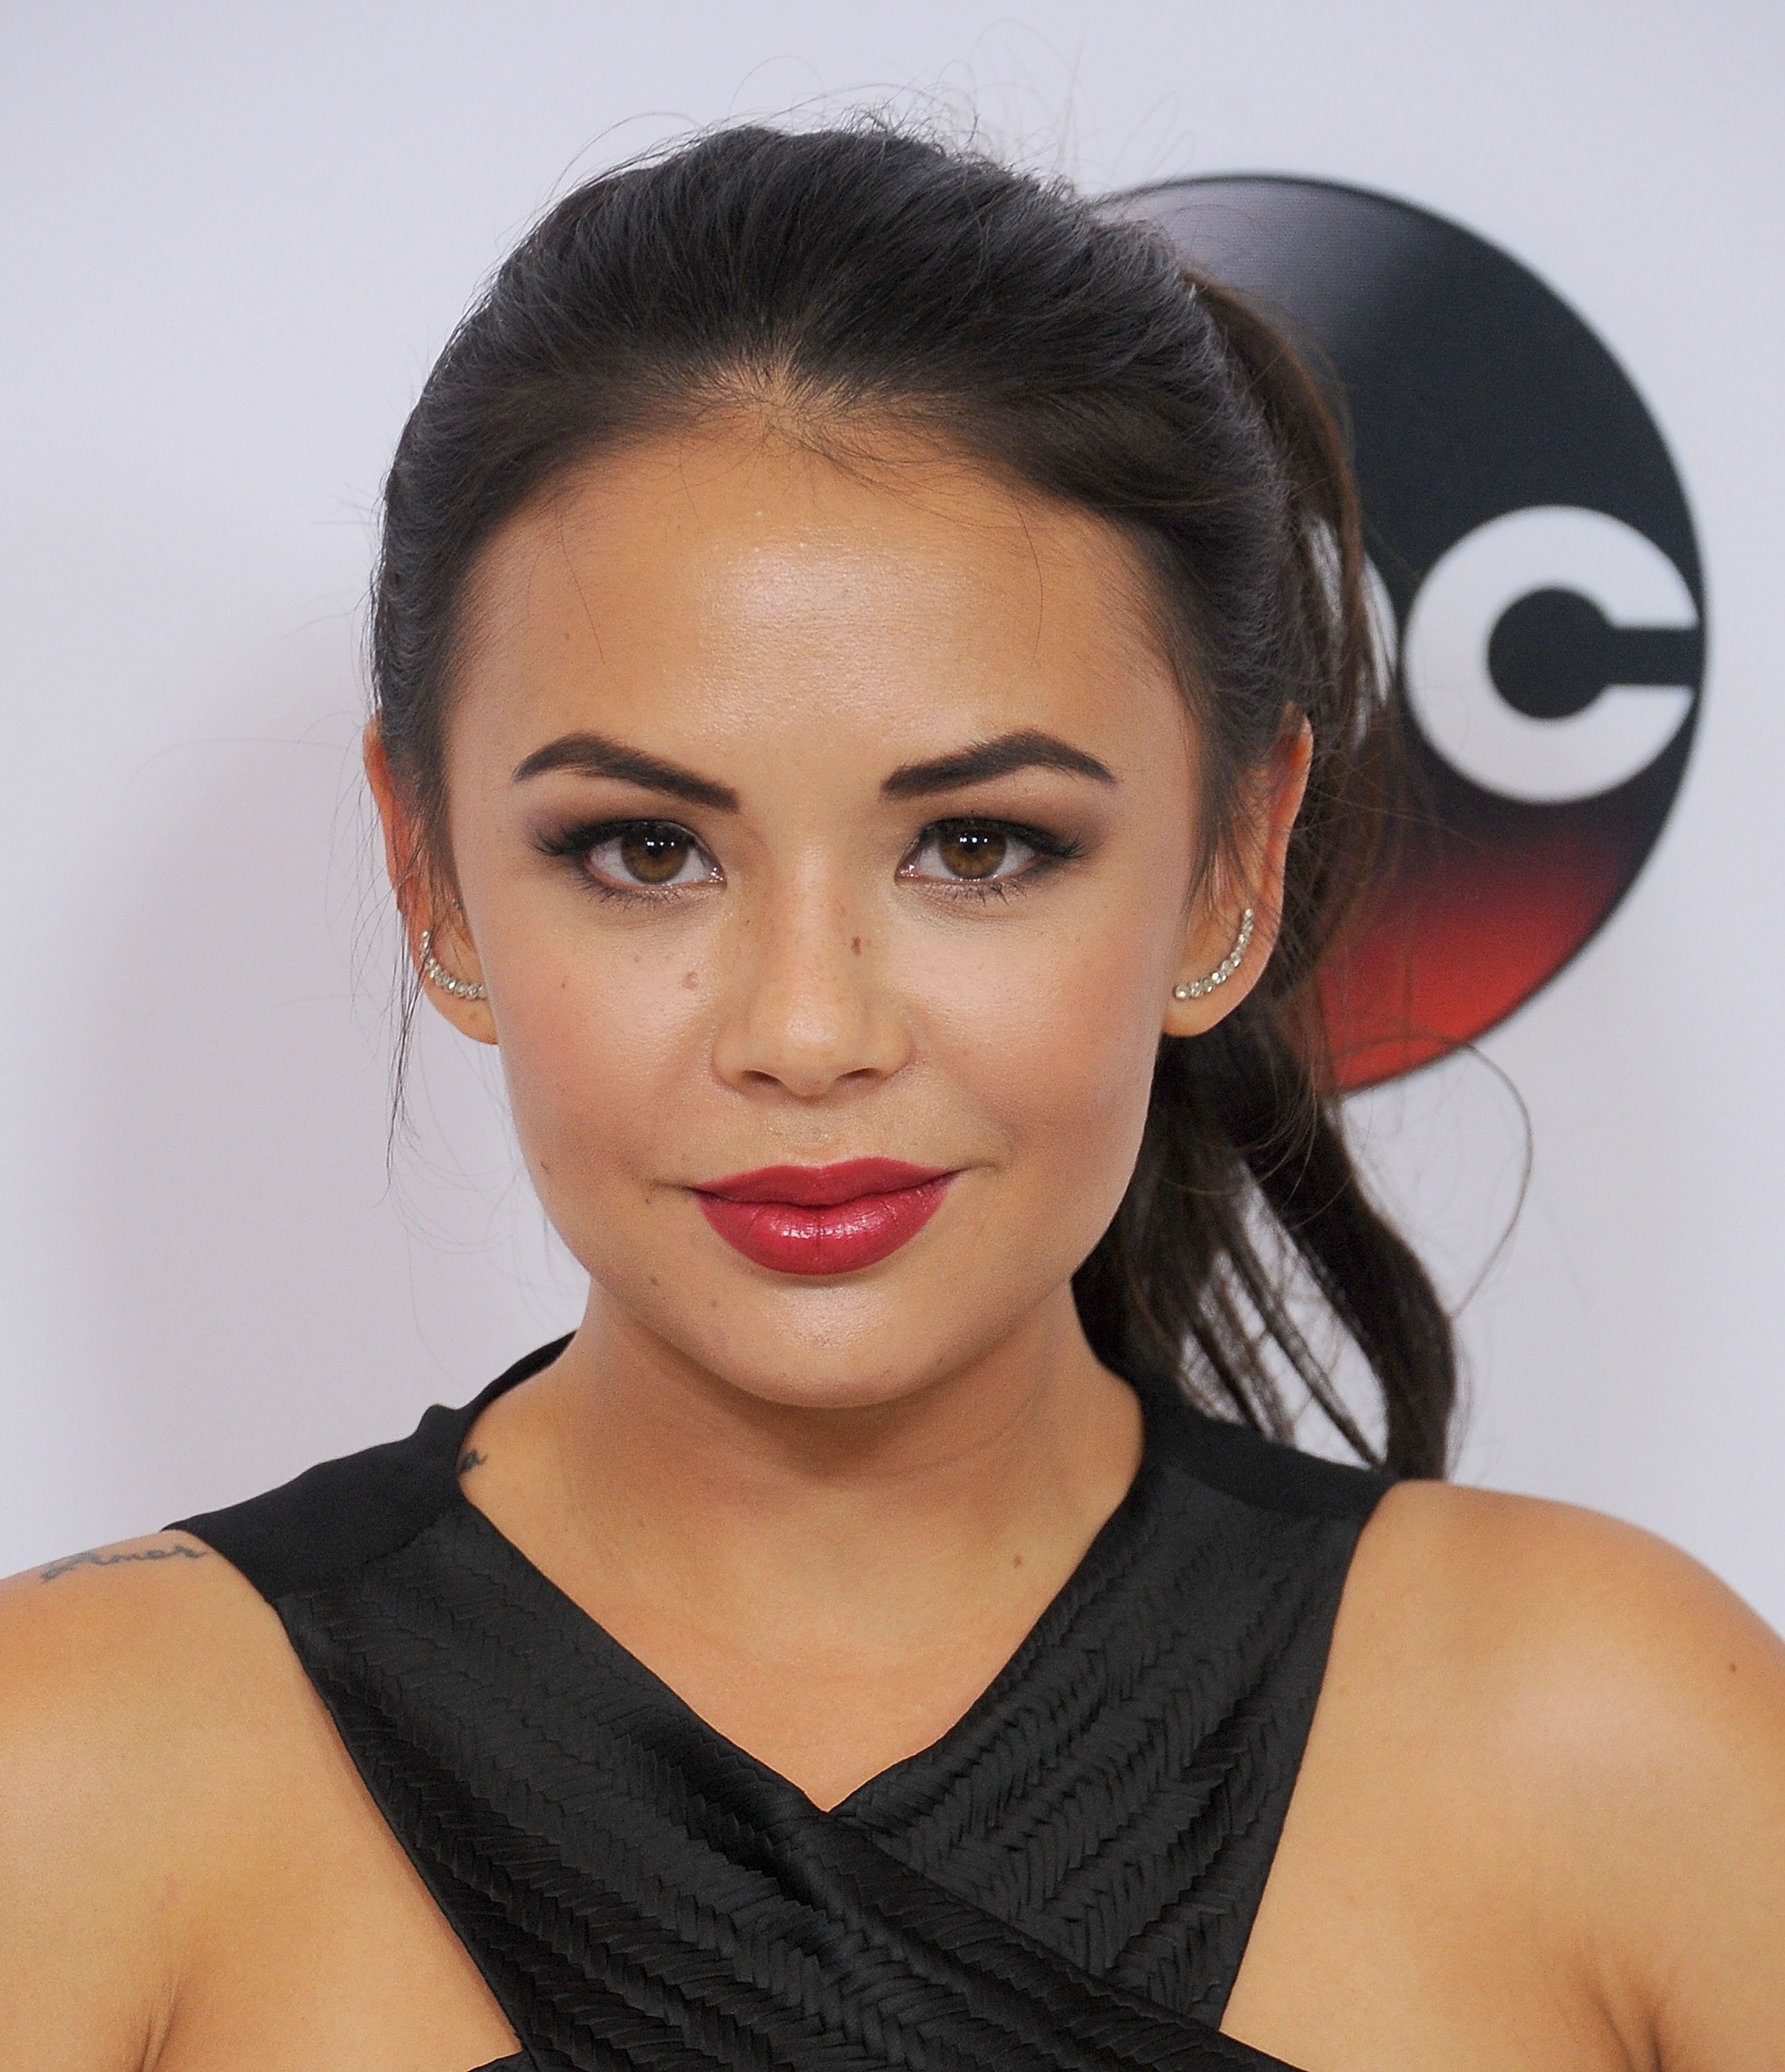 BEVERLY HILLS, CA - AUGUST 04:  Actress Janel Parrish arrives at the Disney ABC Television Group's 2015 TCA Summer Press Tour on August 4, 2015 in Beverly Hills, California.  (Photo by Gregg DeGuire/WireImage)